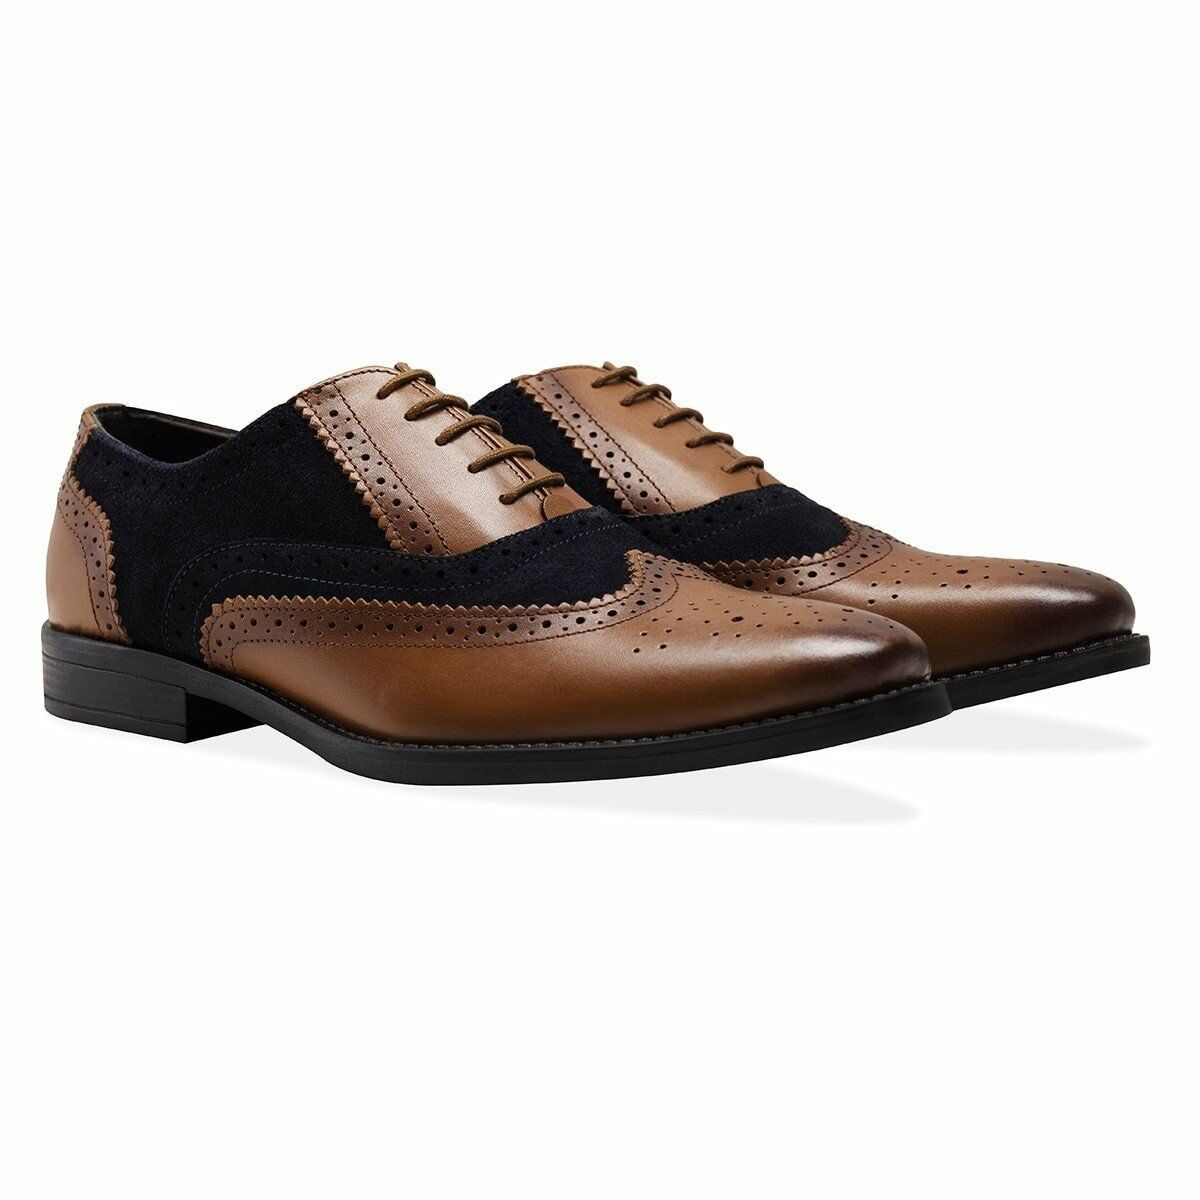 Redfoot Mens Gatsby Leather & Suede Navy Tan Brogues Smart Formal Wedding shoes